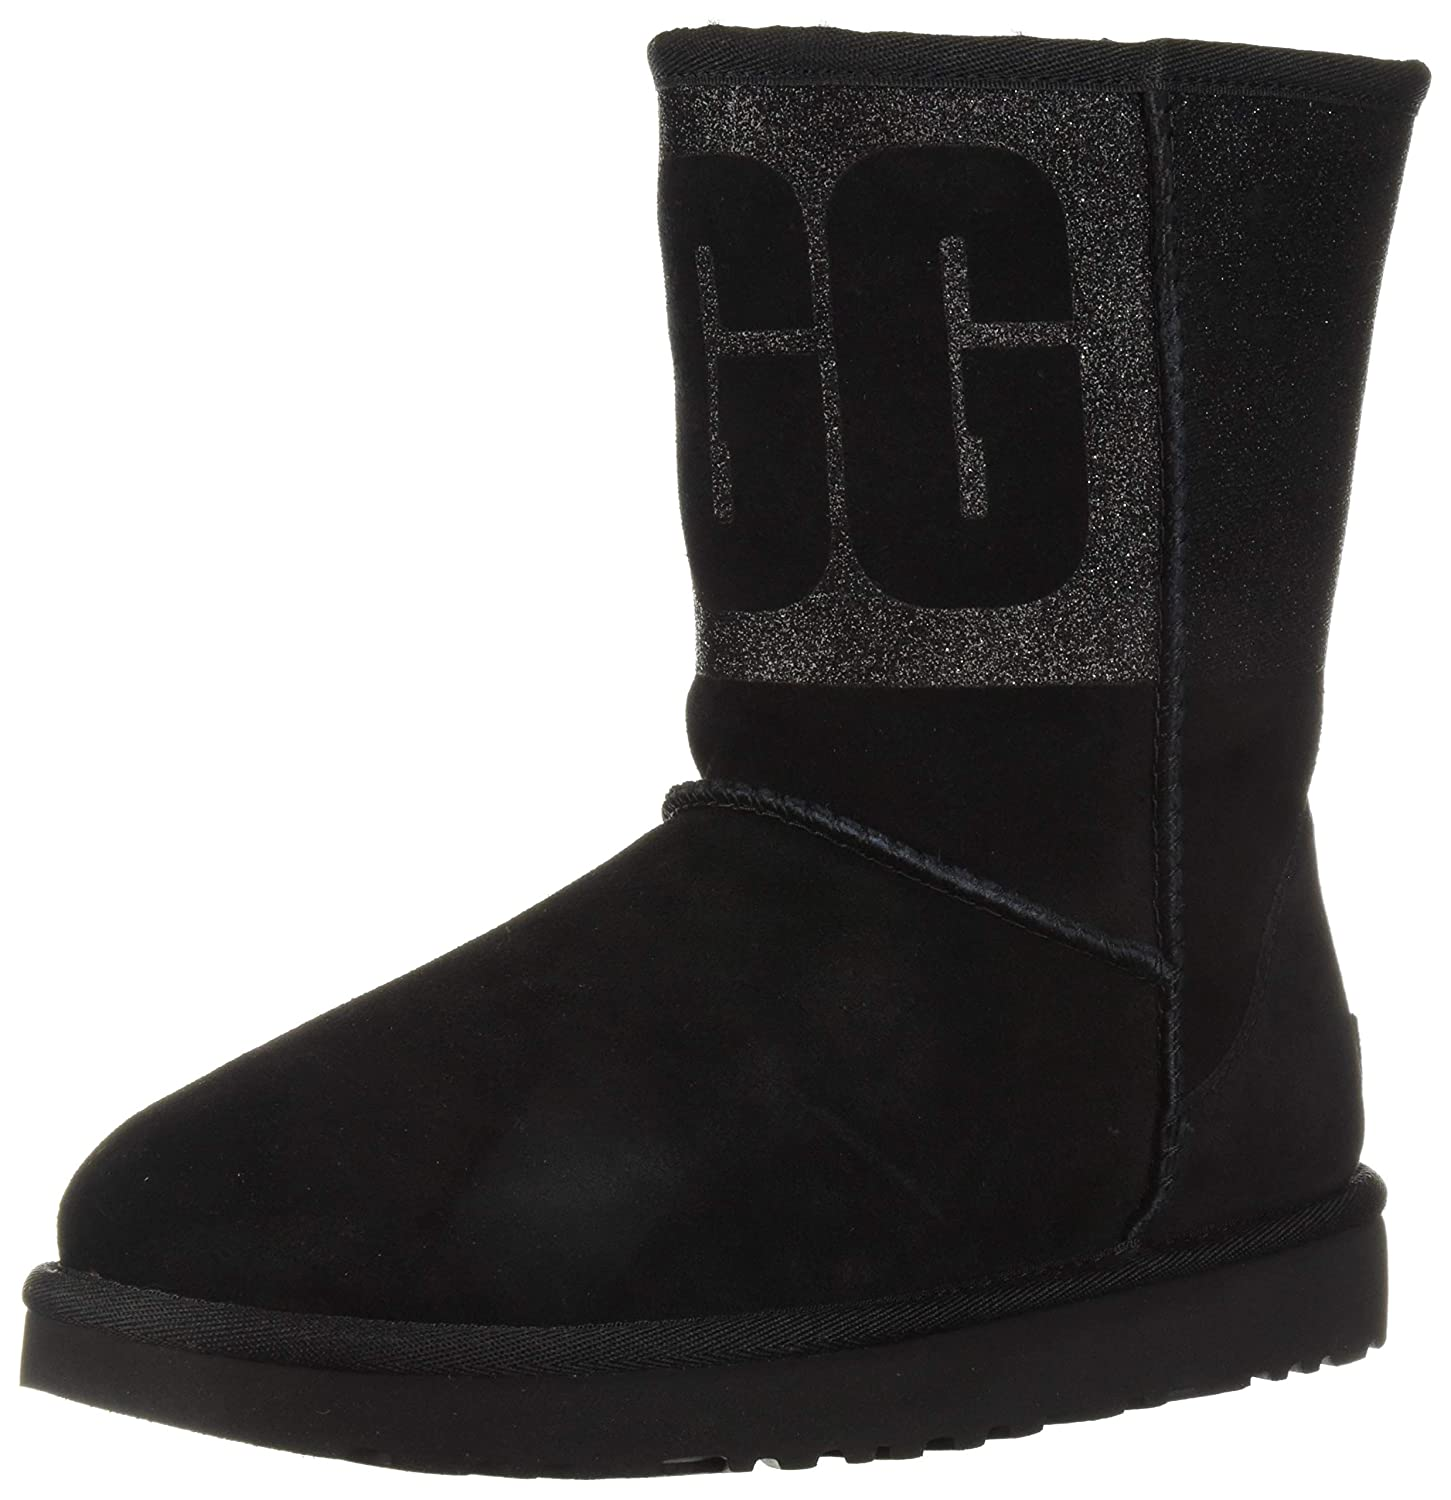 a1ca6c178d9 UGG Women's W Classic Short UGG Sparkle Fashion Boot